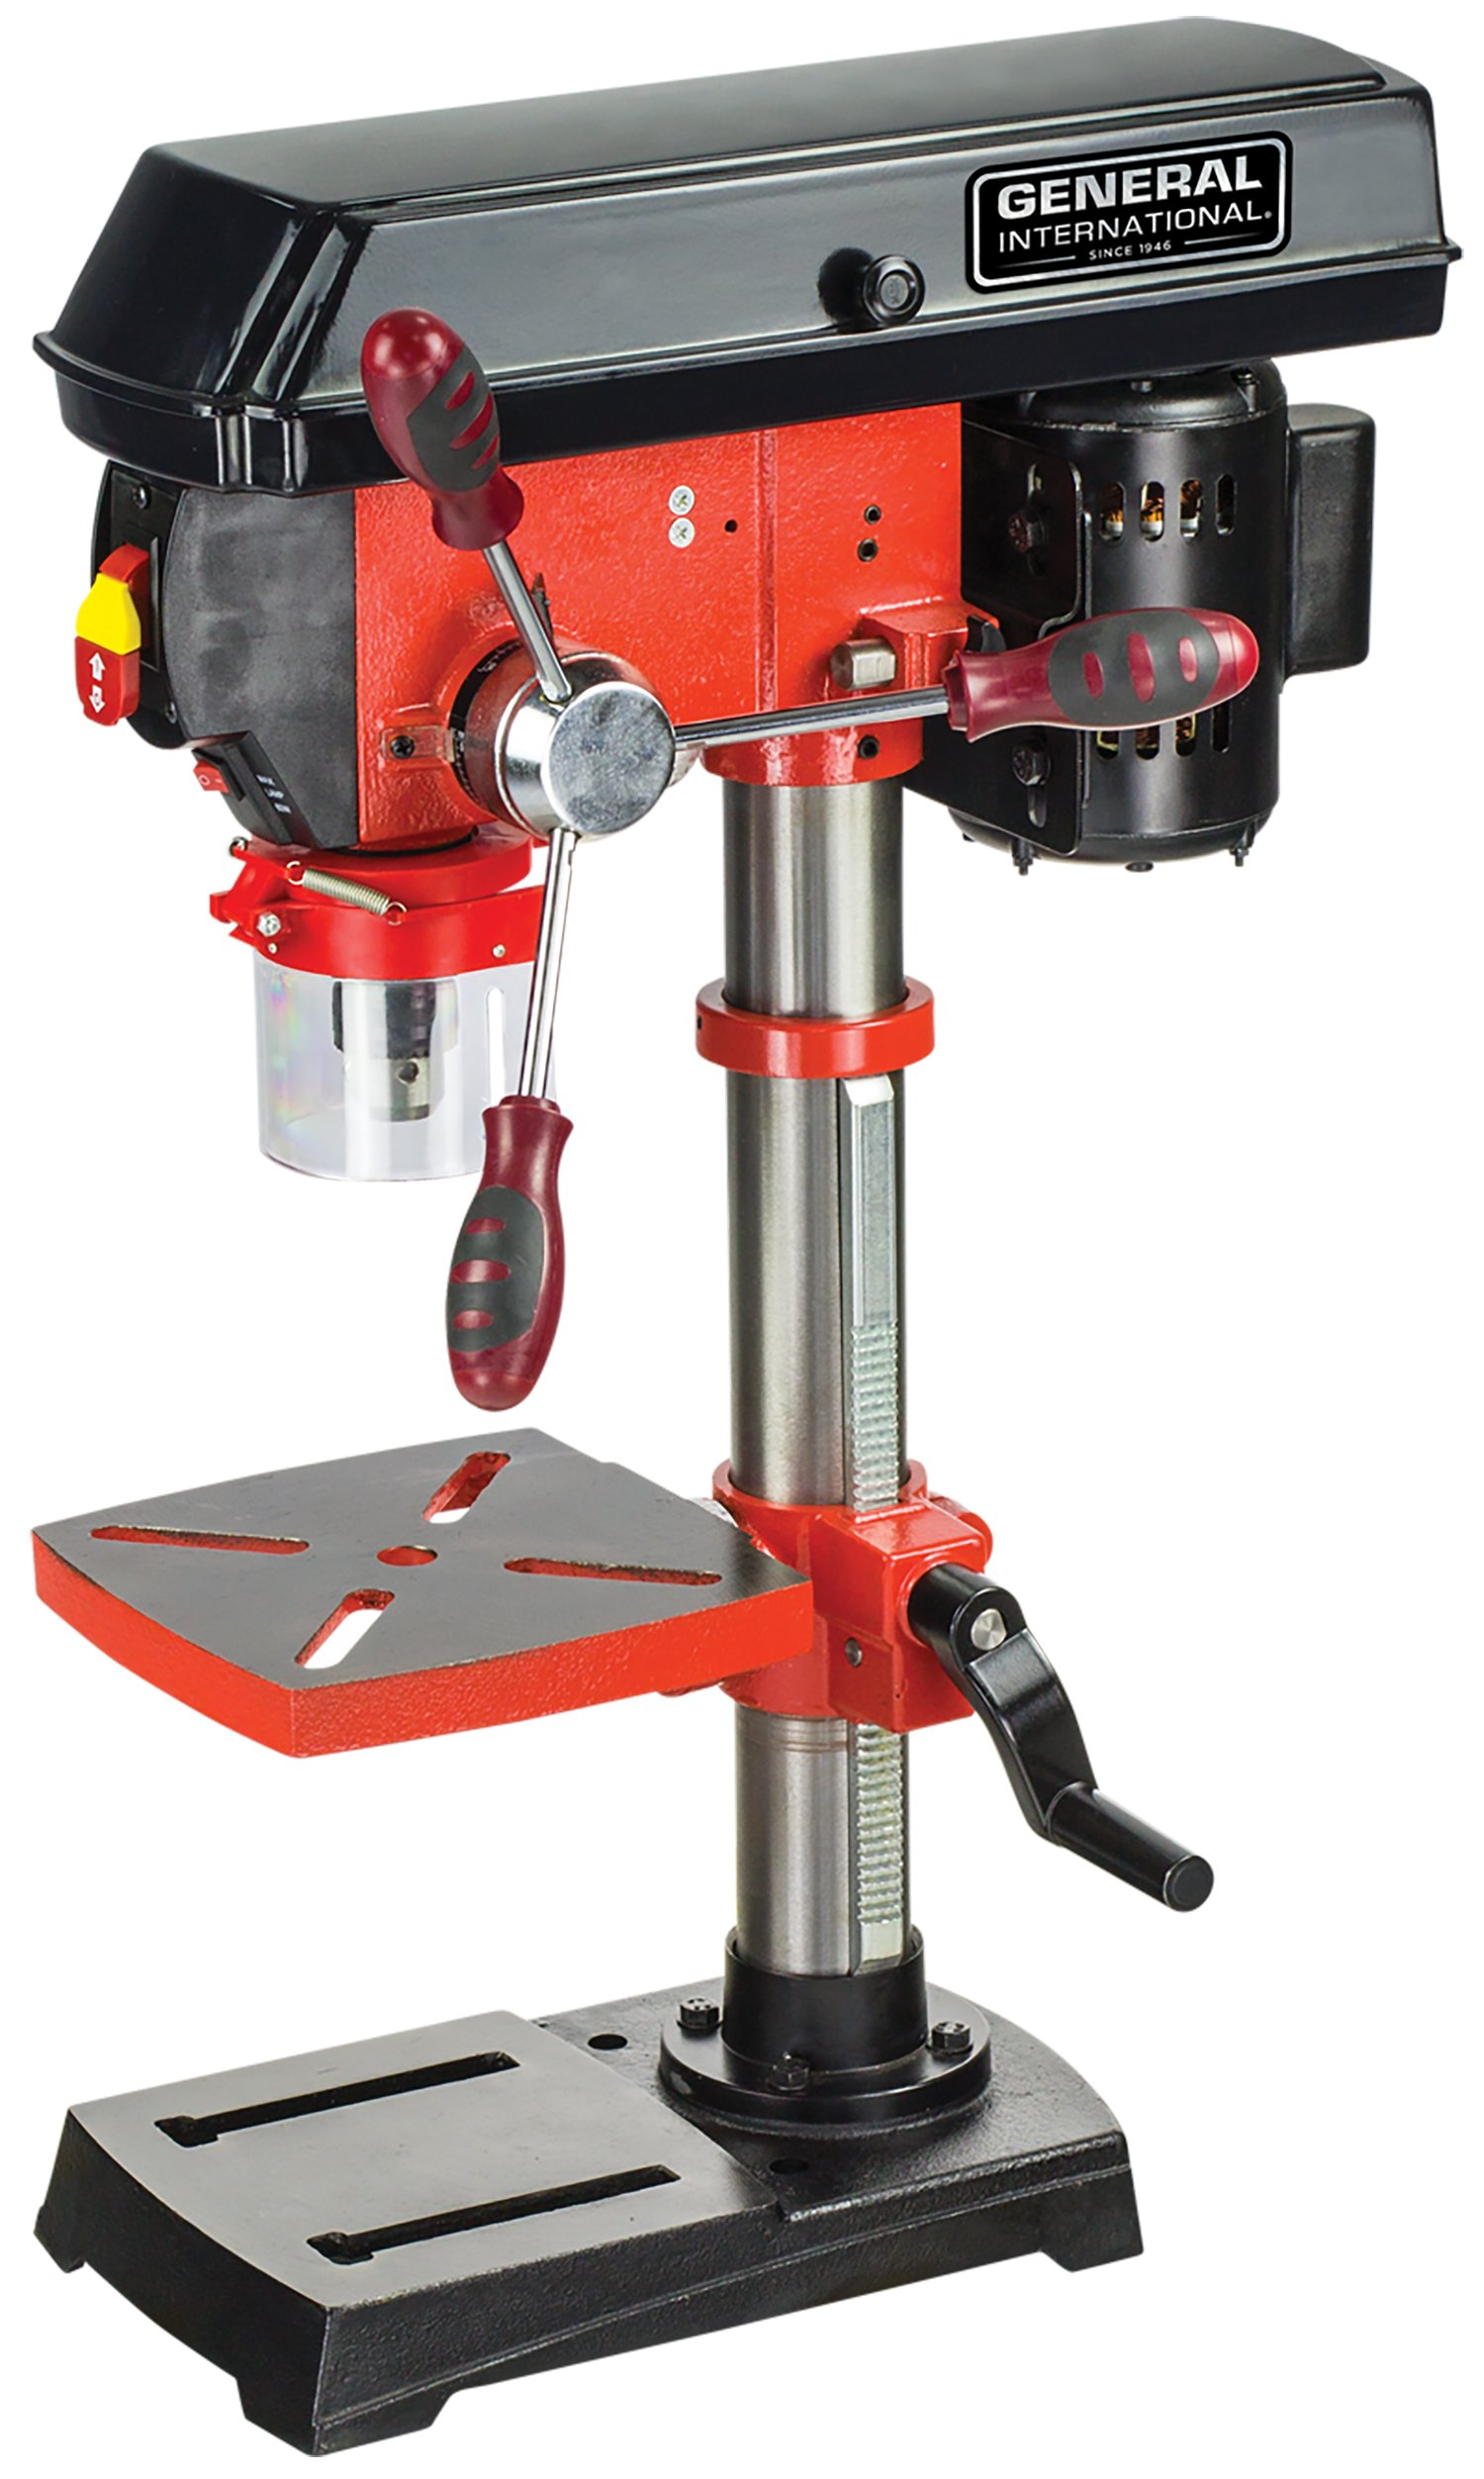 General International DP2002 10'' 5 Speed Drill Press